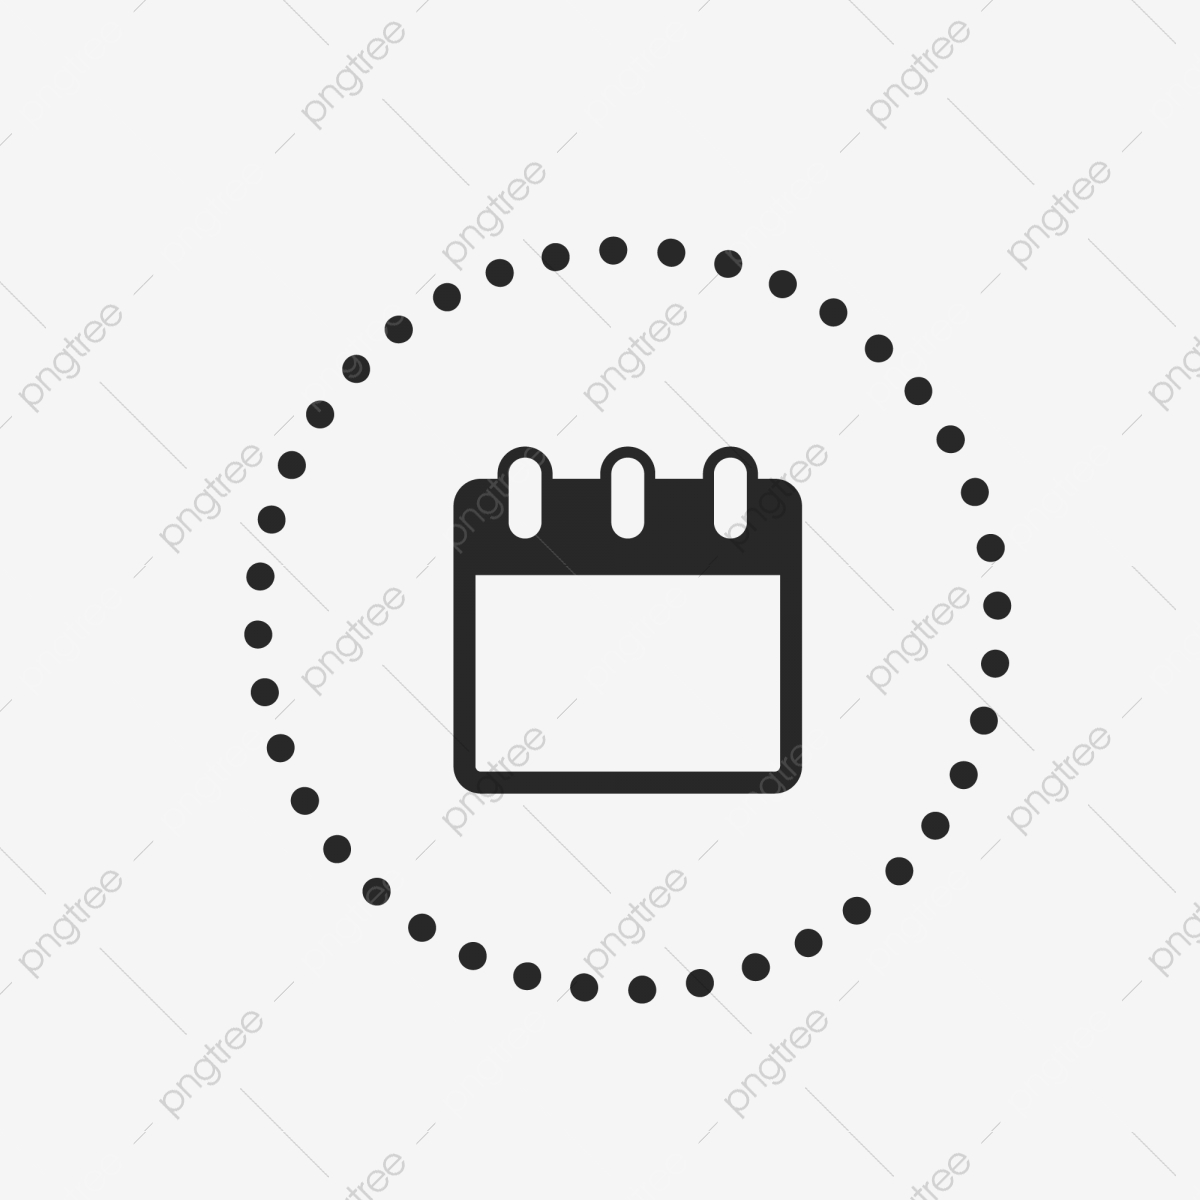 Calendrier Icone Png.Calendrier Date Icone Icone Icone De Jaune Fichier Png Et